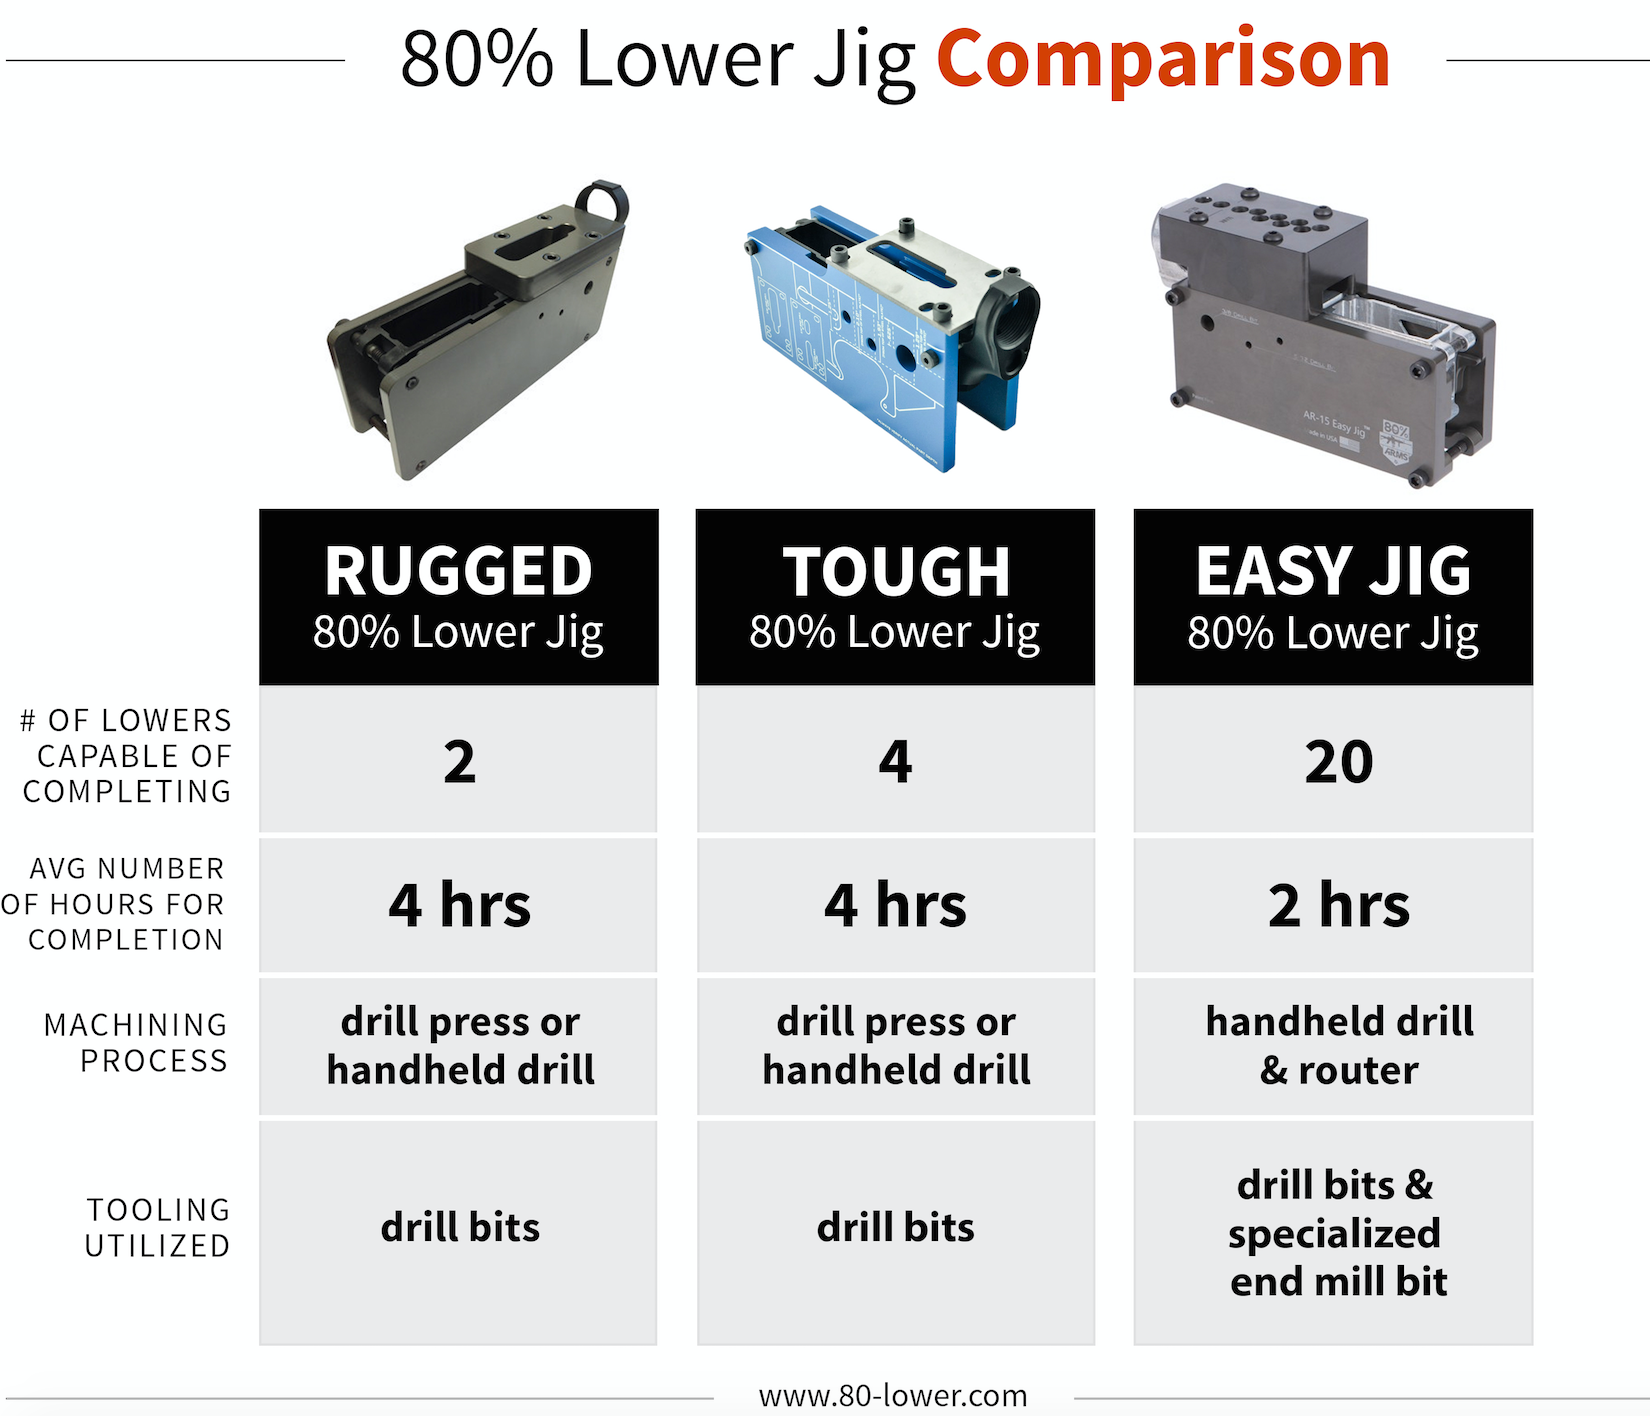 Easy Jig 80% Lower Jig Comparison Chart - blog image